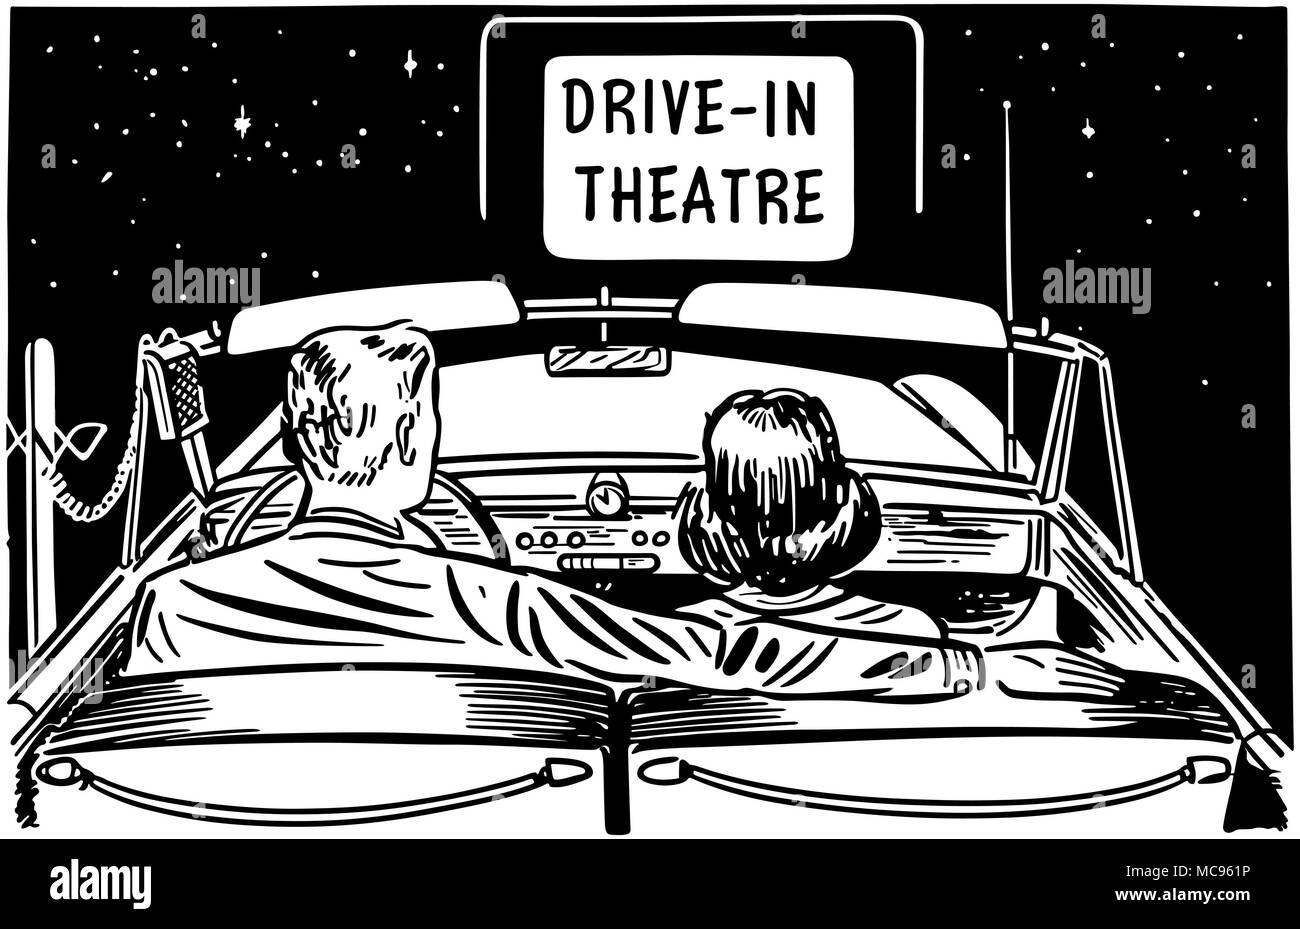 Couple At Drive-In Theatre - Retro Clipart Illustration - Stock Image